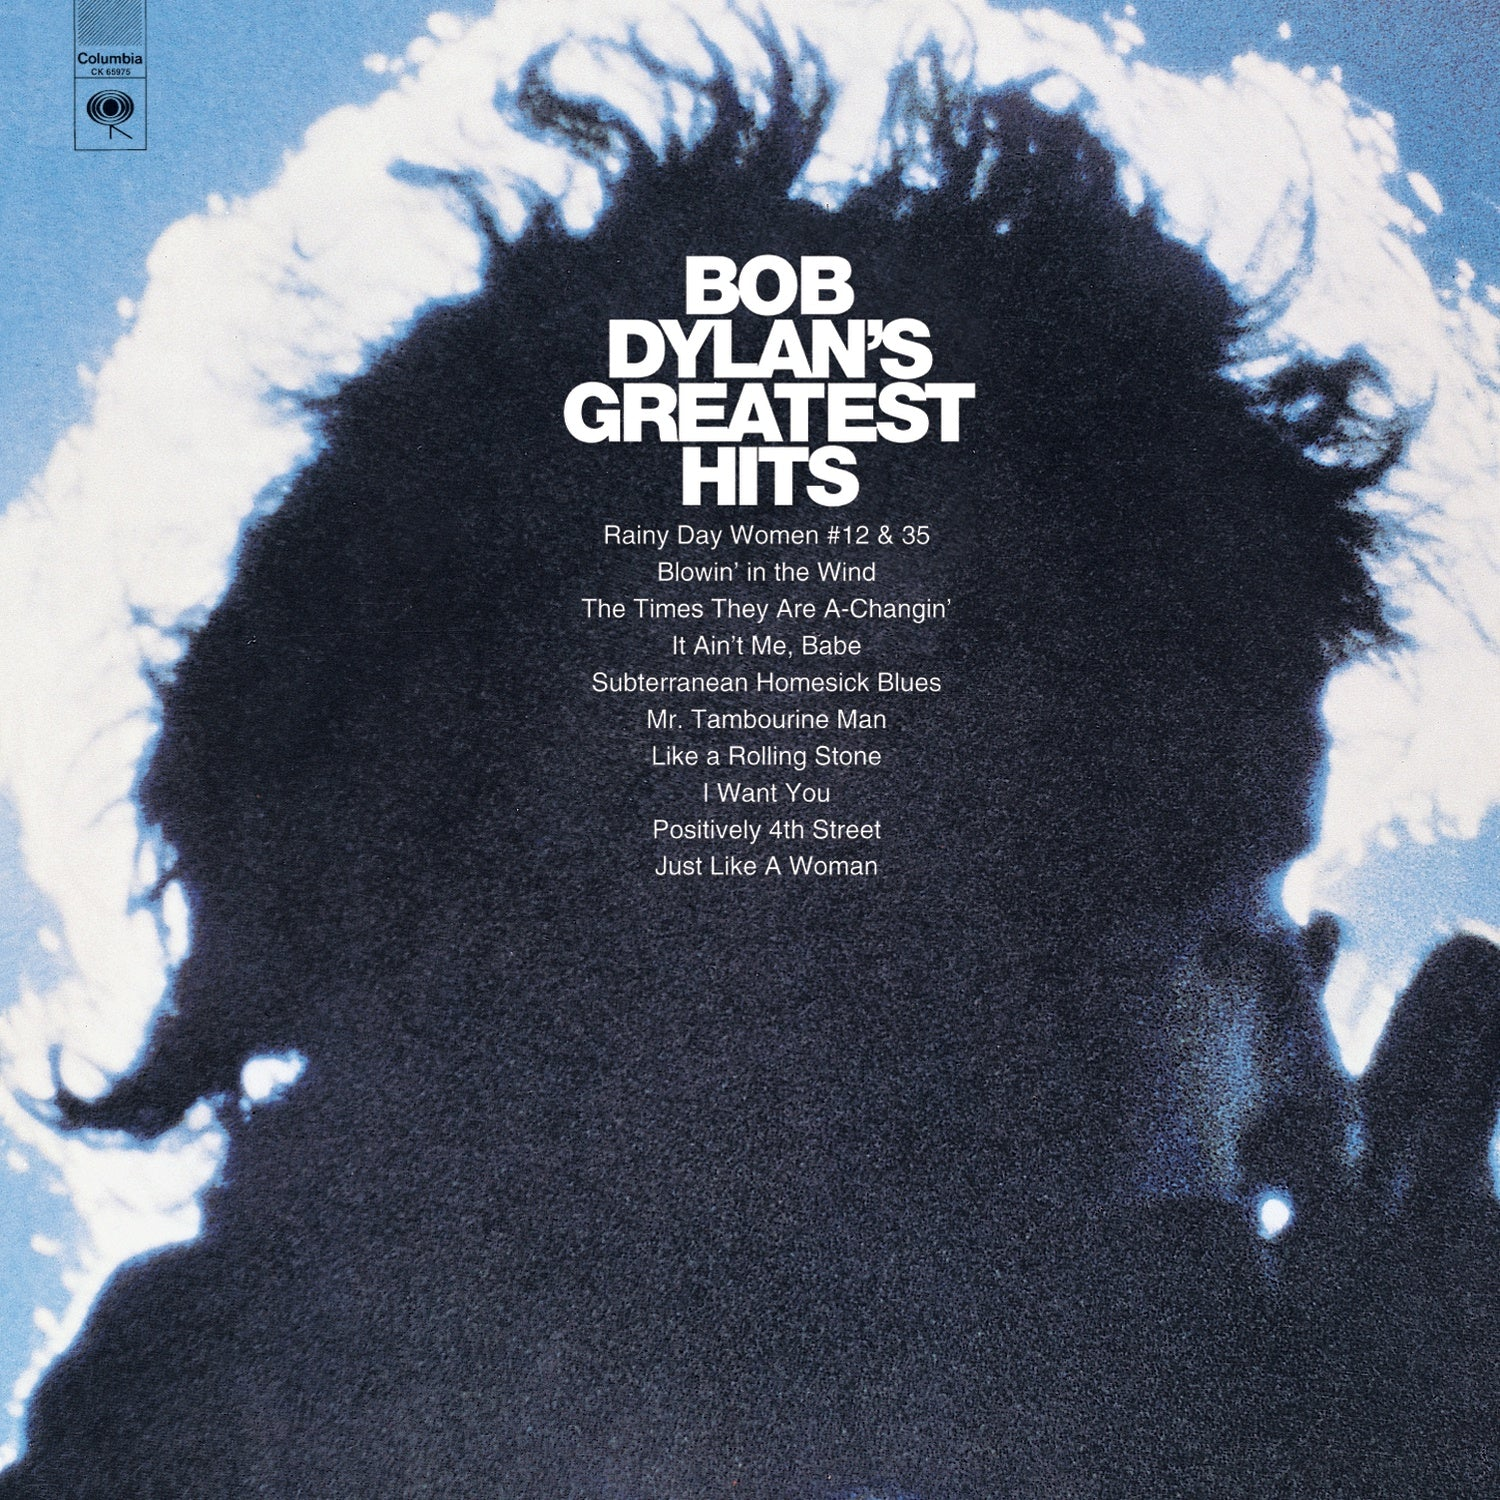 Bob Dylan ‎– Greatest Hits (1967) - New Lp Record 2018 Columbia USA 180 gram Vinyl & Download - Folk Rock